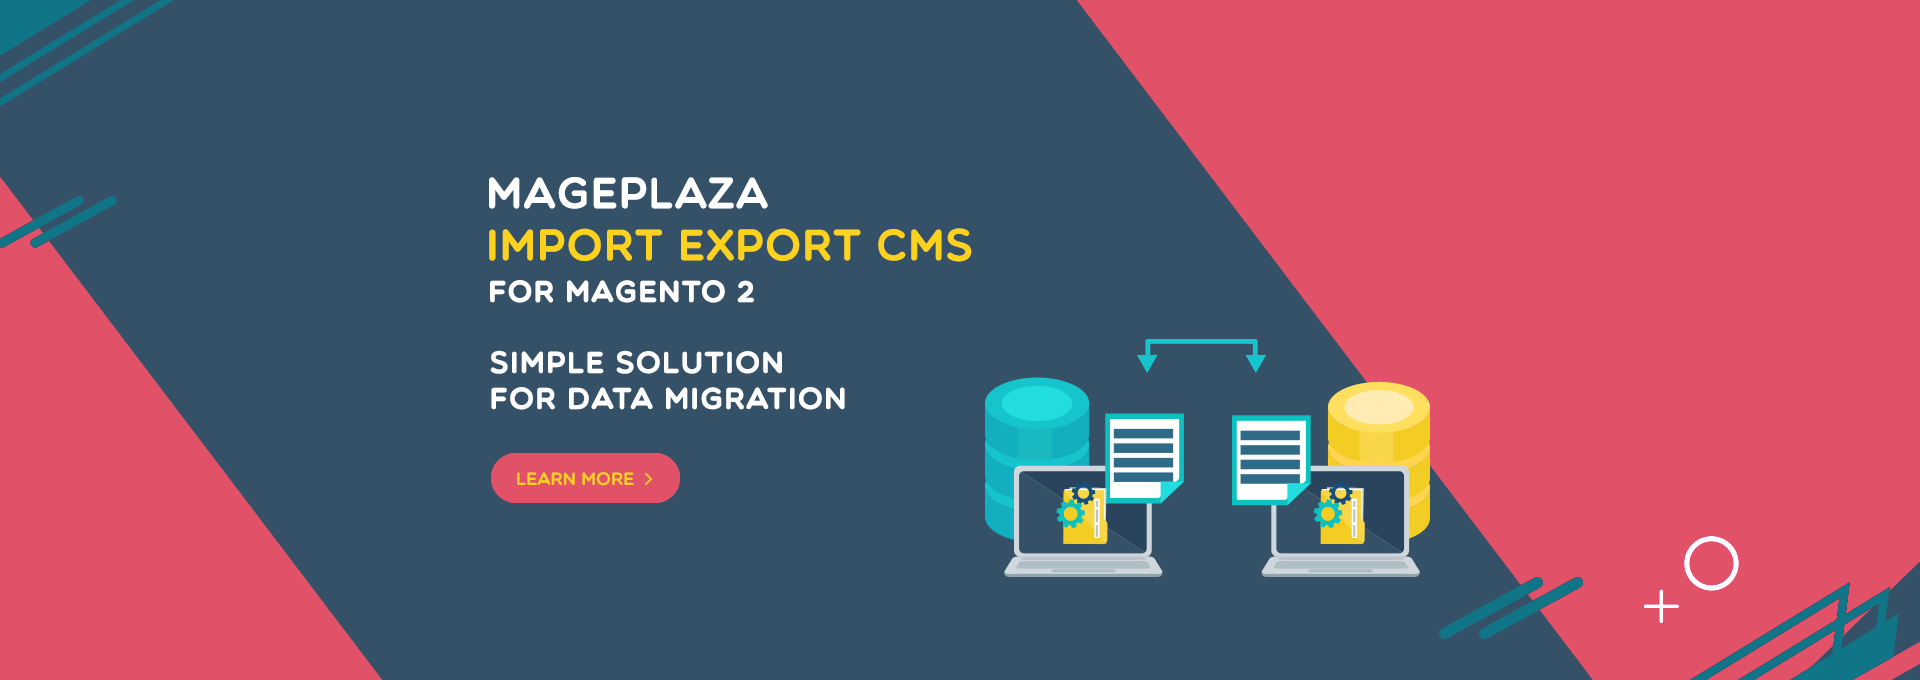 How to configure Import Export CMS pages on Magento 2